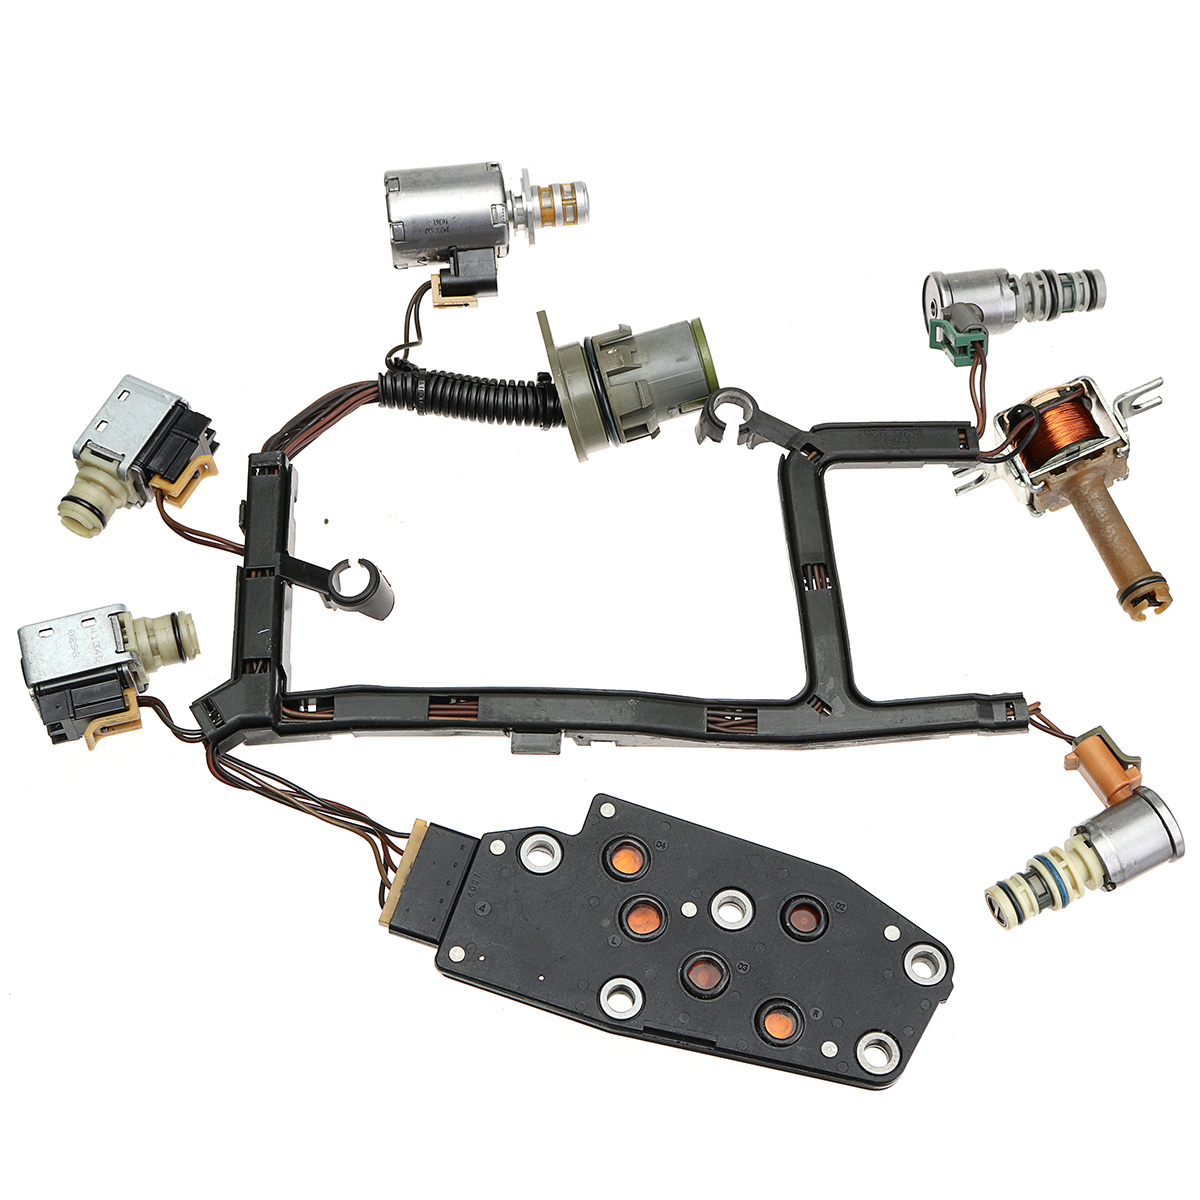 4L60E 4L65E Automatic Transmission Master Solenoid Kit TCC EPC PWM Shift 3-2 Harness 1993-2005 флюс для пайки rexant лти 120 30ml 09 3625